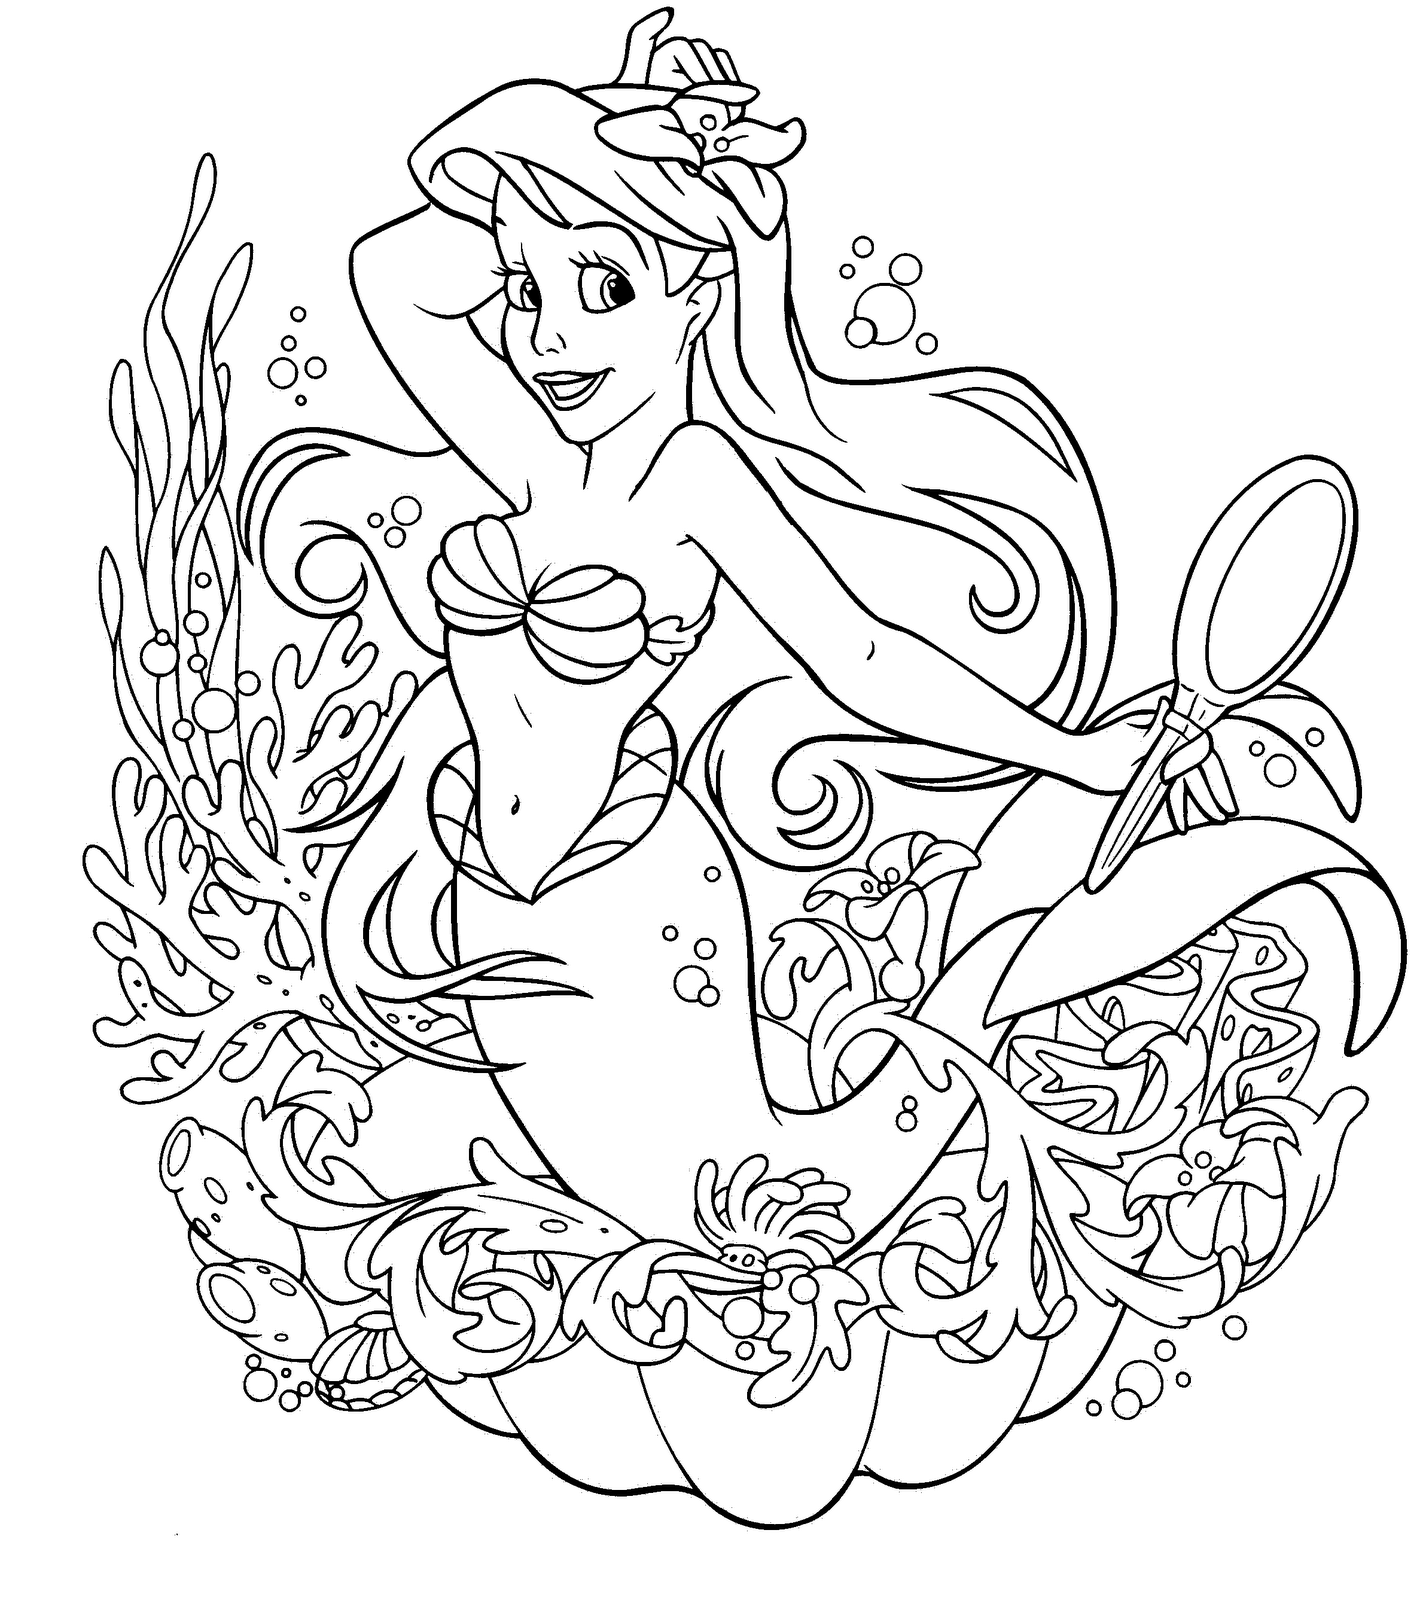 mermaid coloring pictures - The Little Mermaid coloring pages Free Coloring Pages